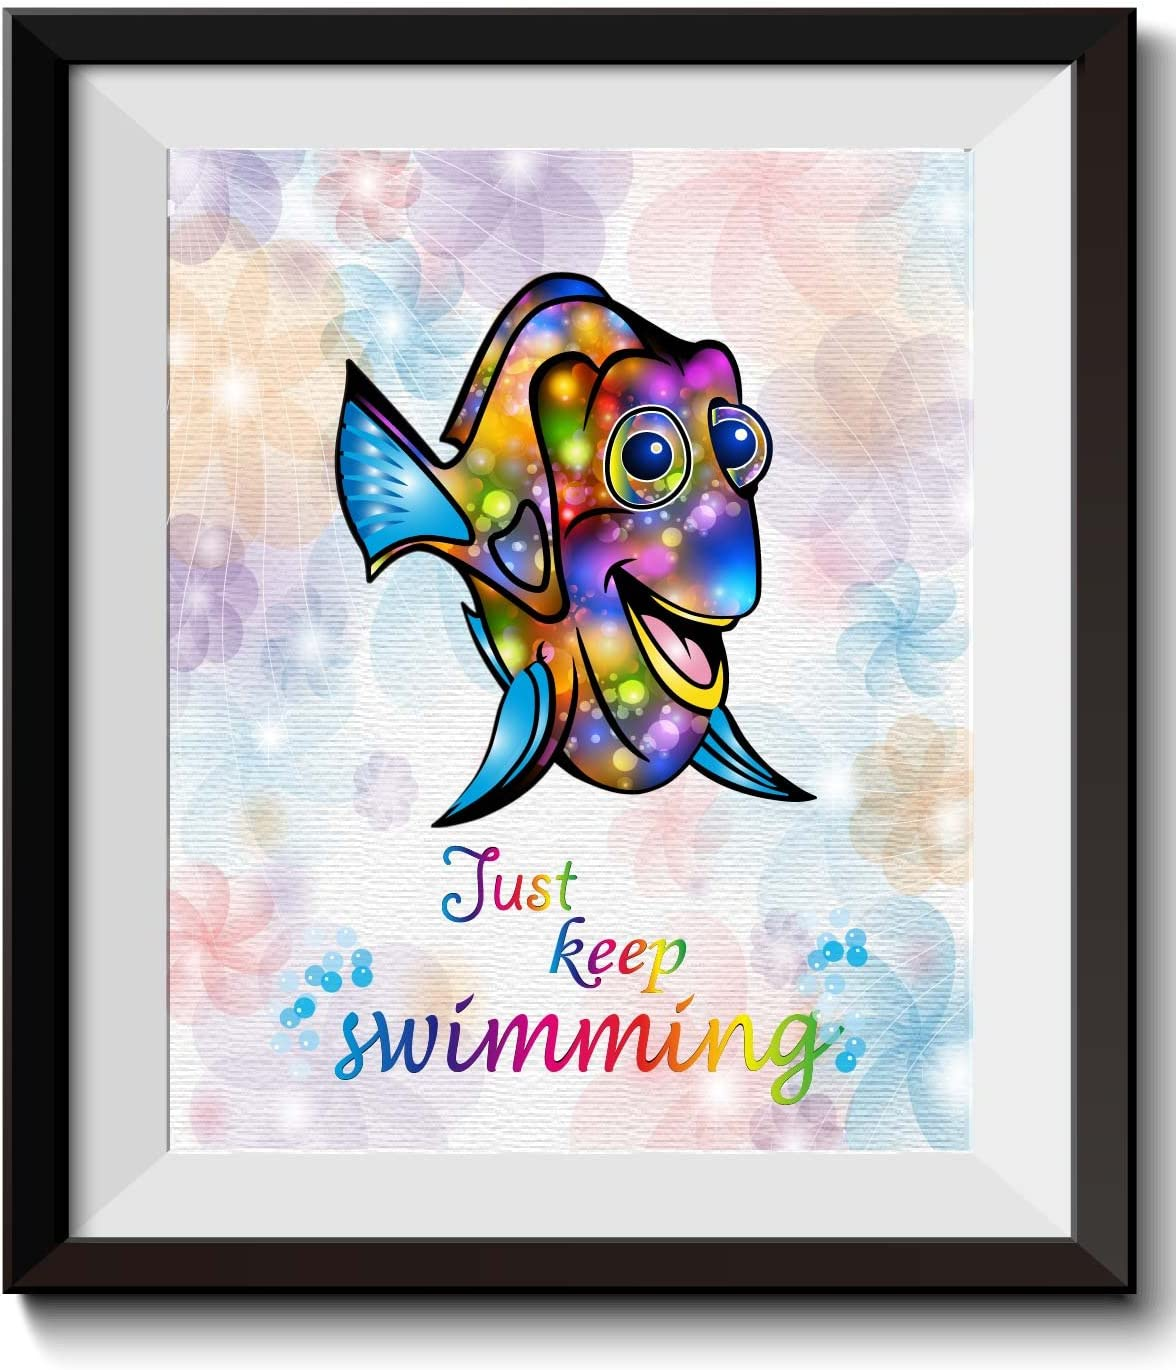 Uhomate Dory Finding Nemo Home Canvas Prints Wall Art Anniversary Gifts Baby Gift Inspirational Quotes Wall Decor Living Room Bedroom Bathroom Artwork C020 (8X10)